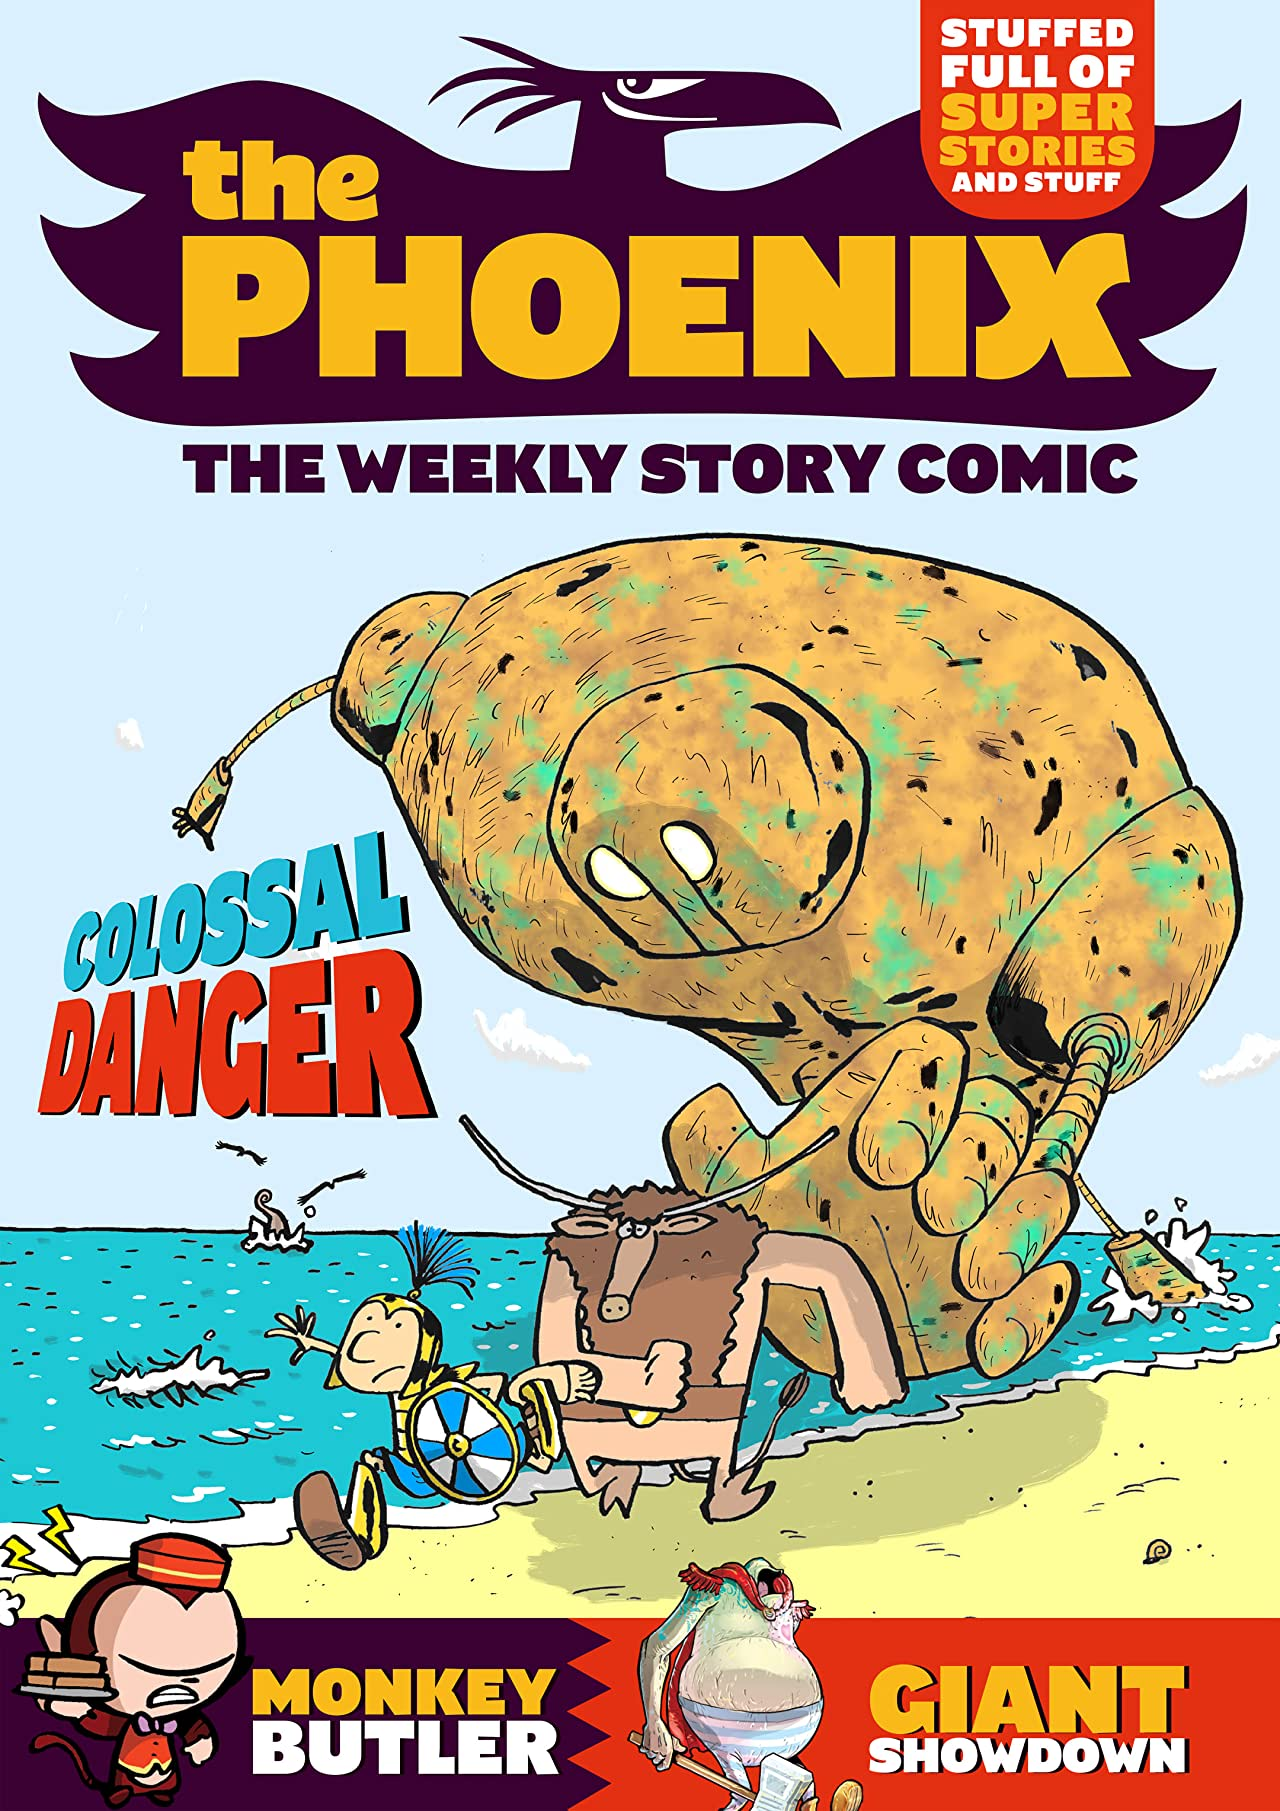 The Phoenix #69: The Weekly Story Comic